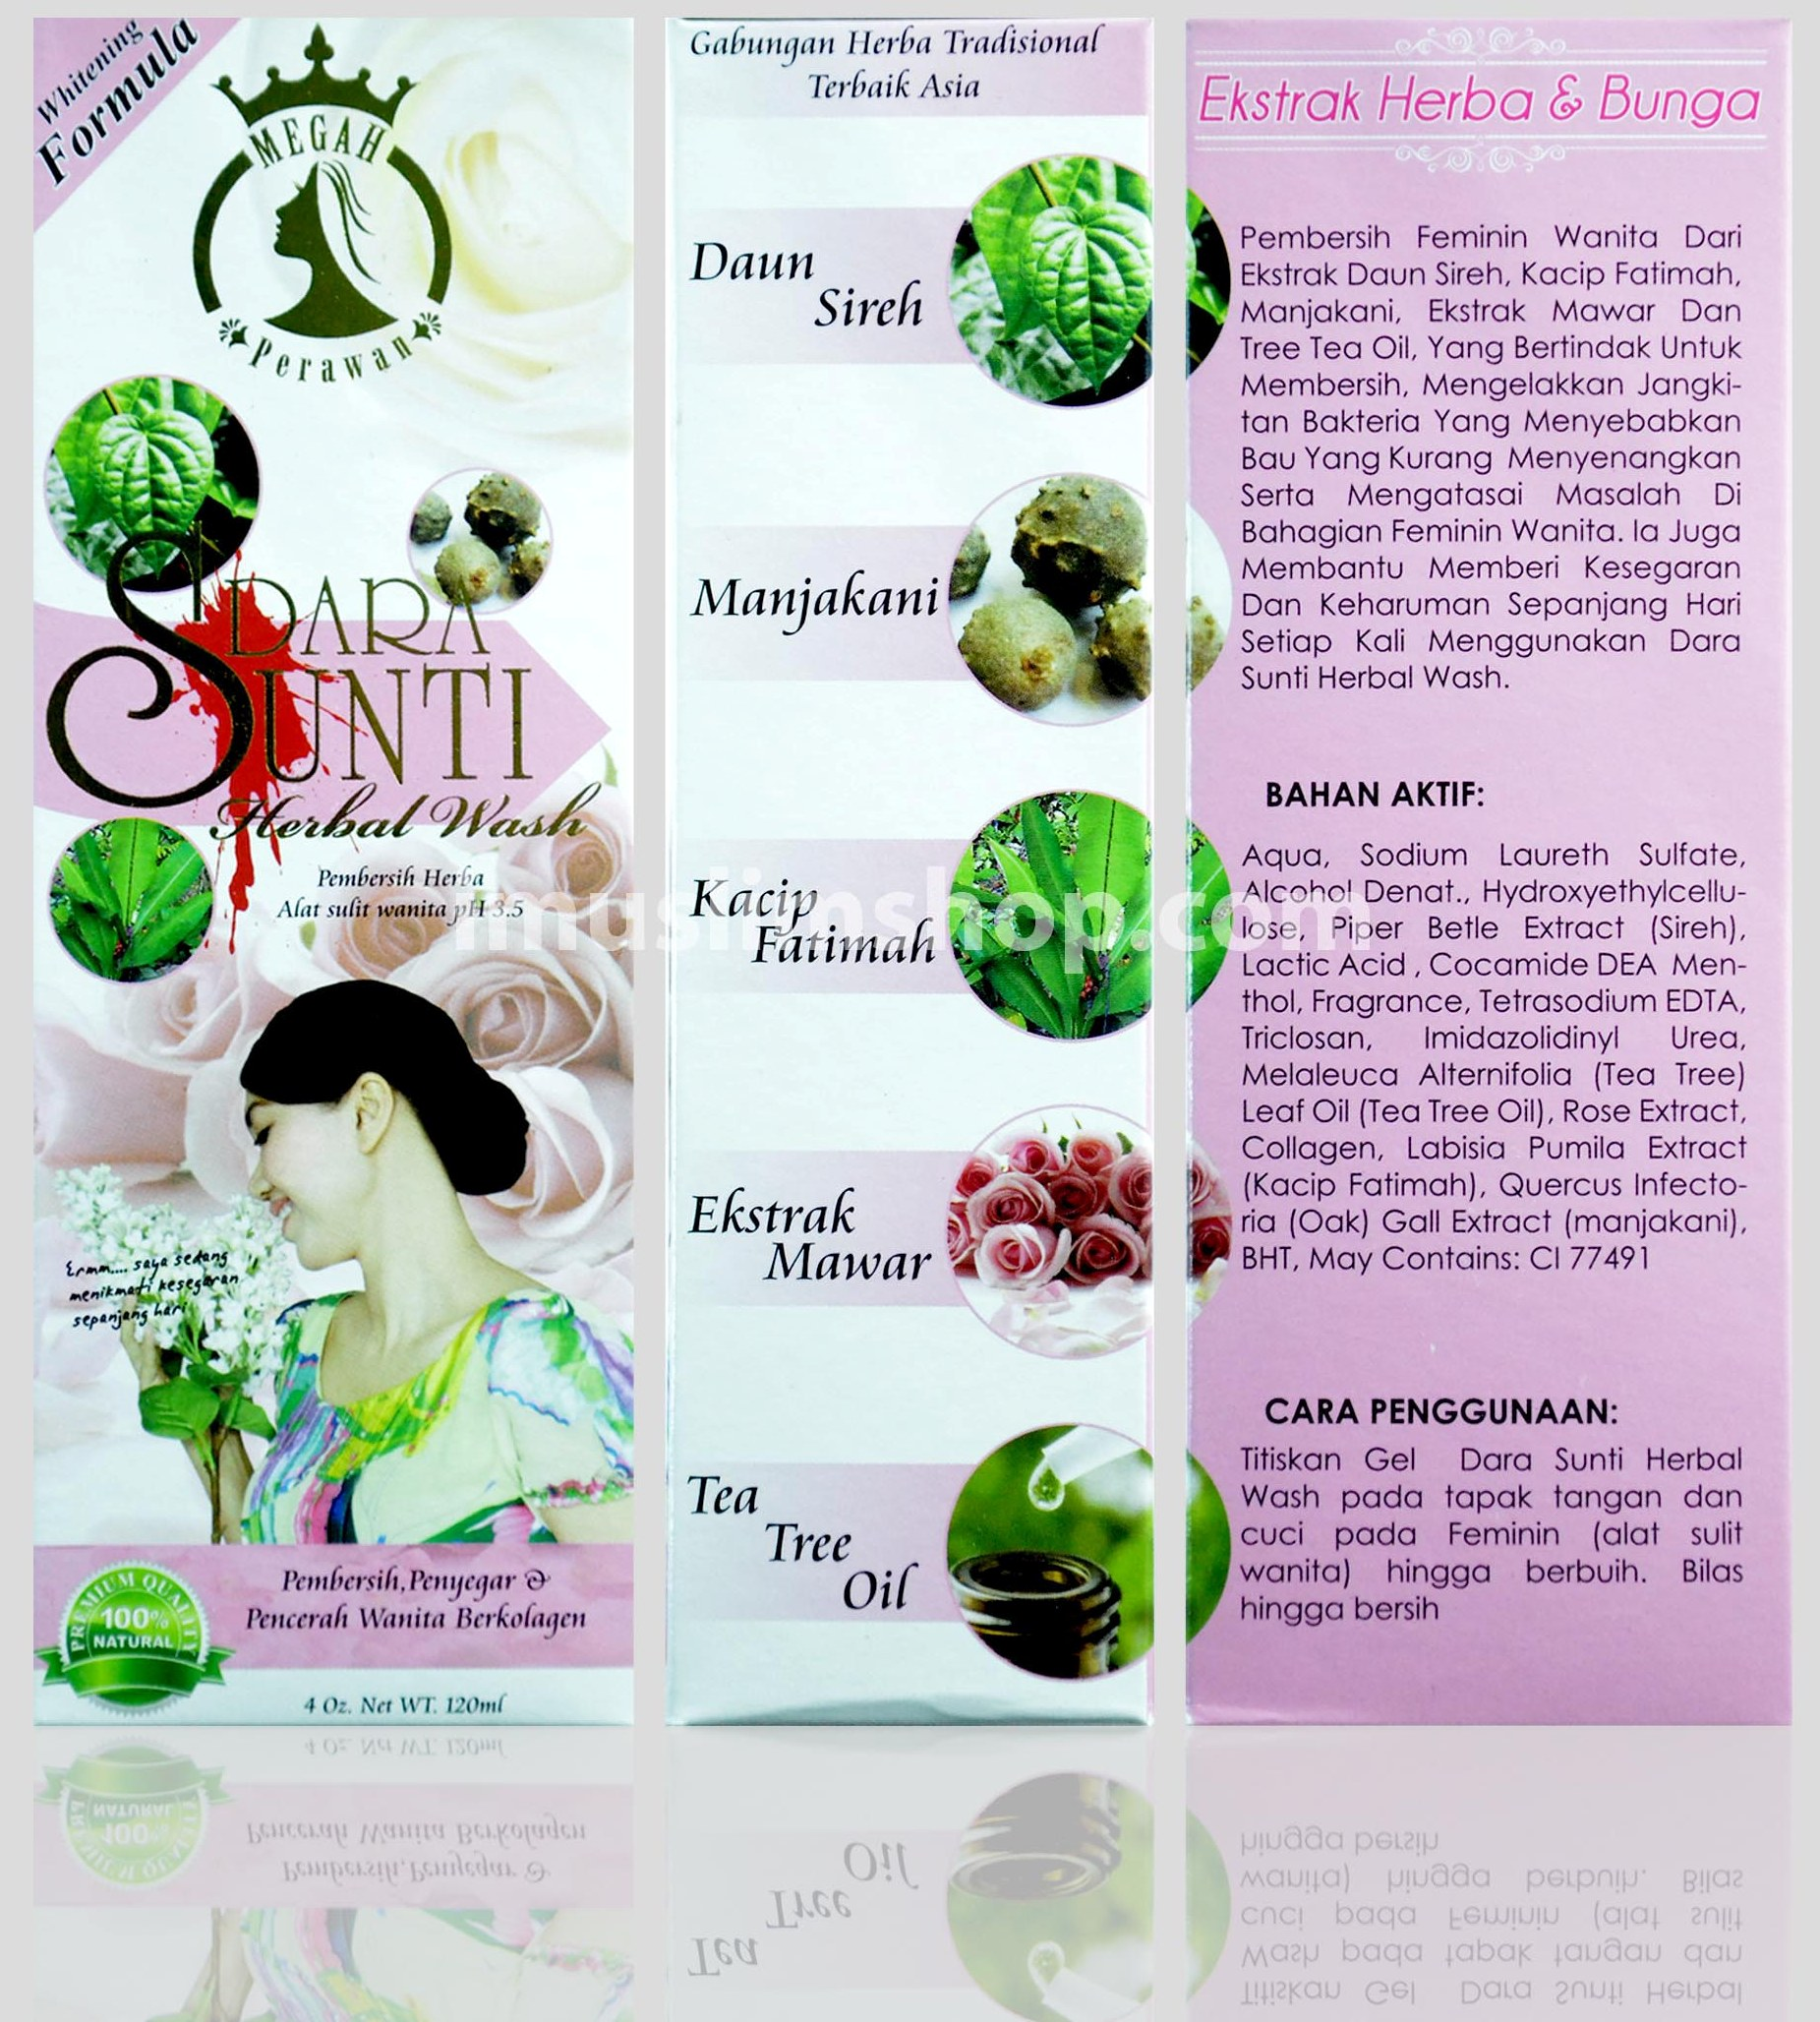 Testimoni Dara Sunti Herbal Wash Dara Sunti Hebal Wash